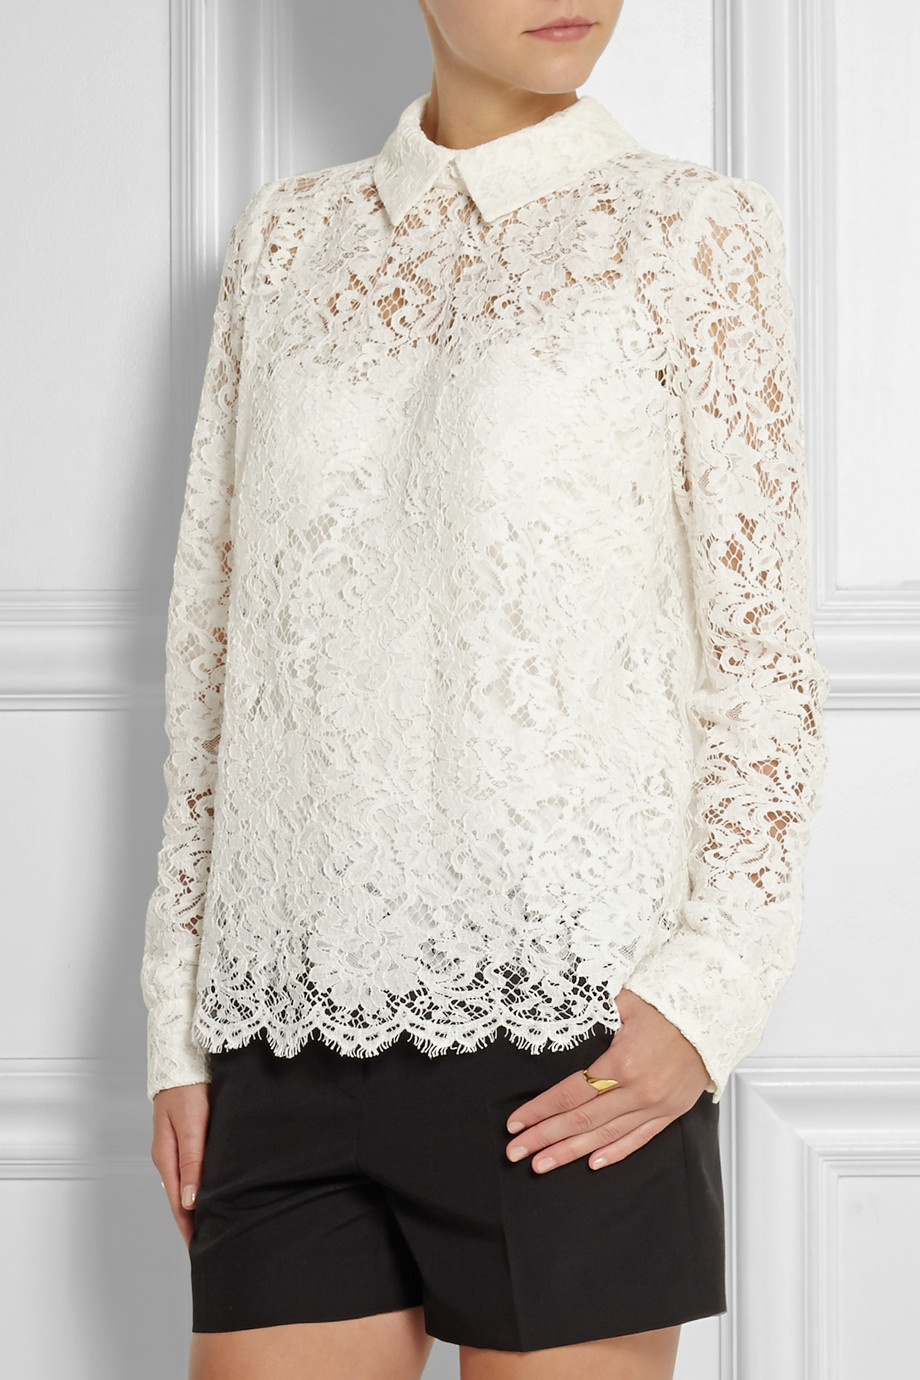 Lyst - Dolce & Gabbana Lace Top in White